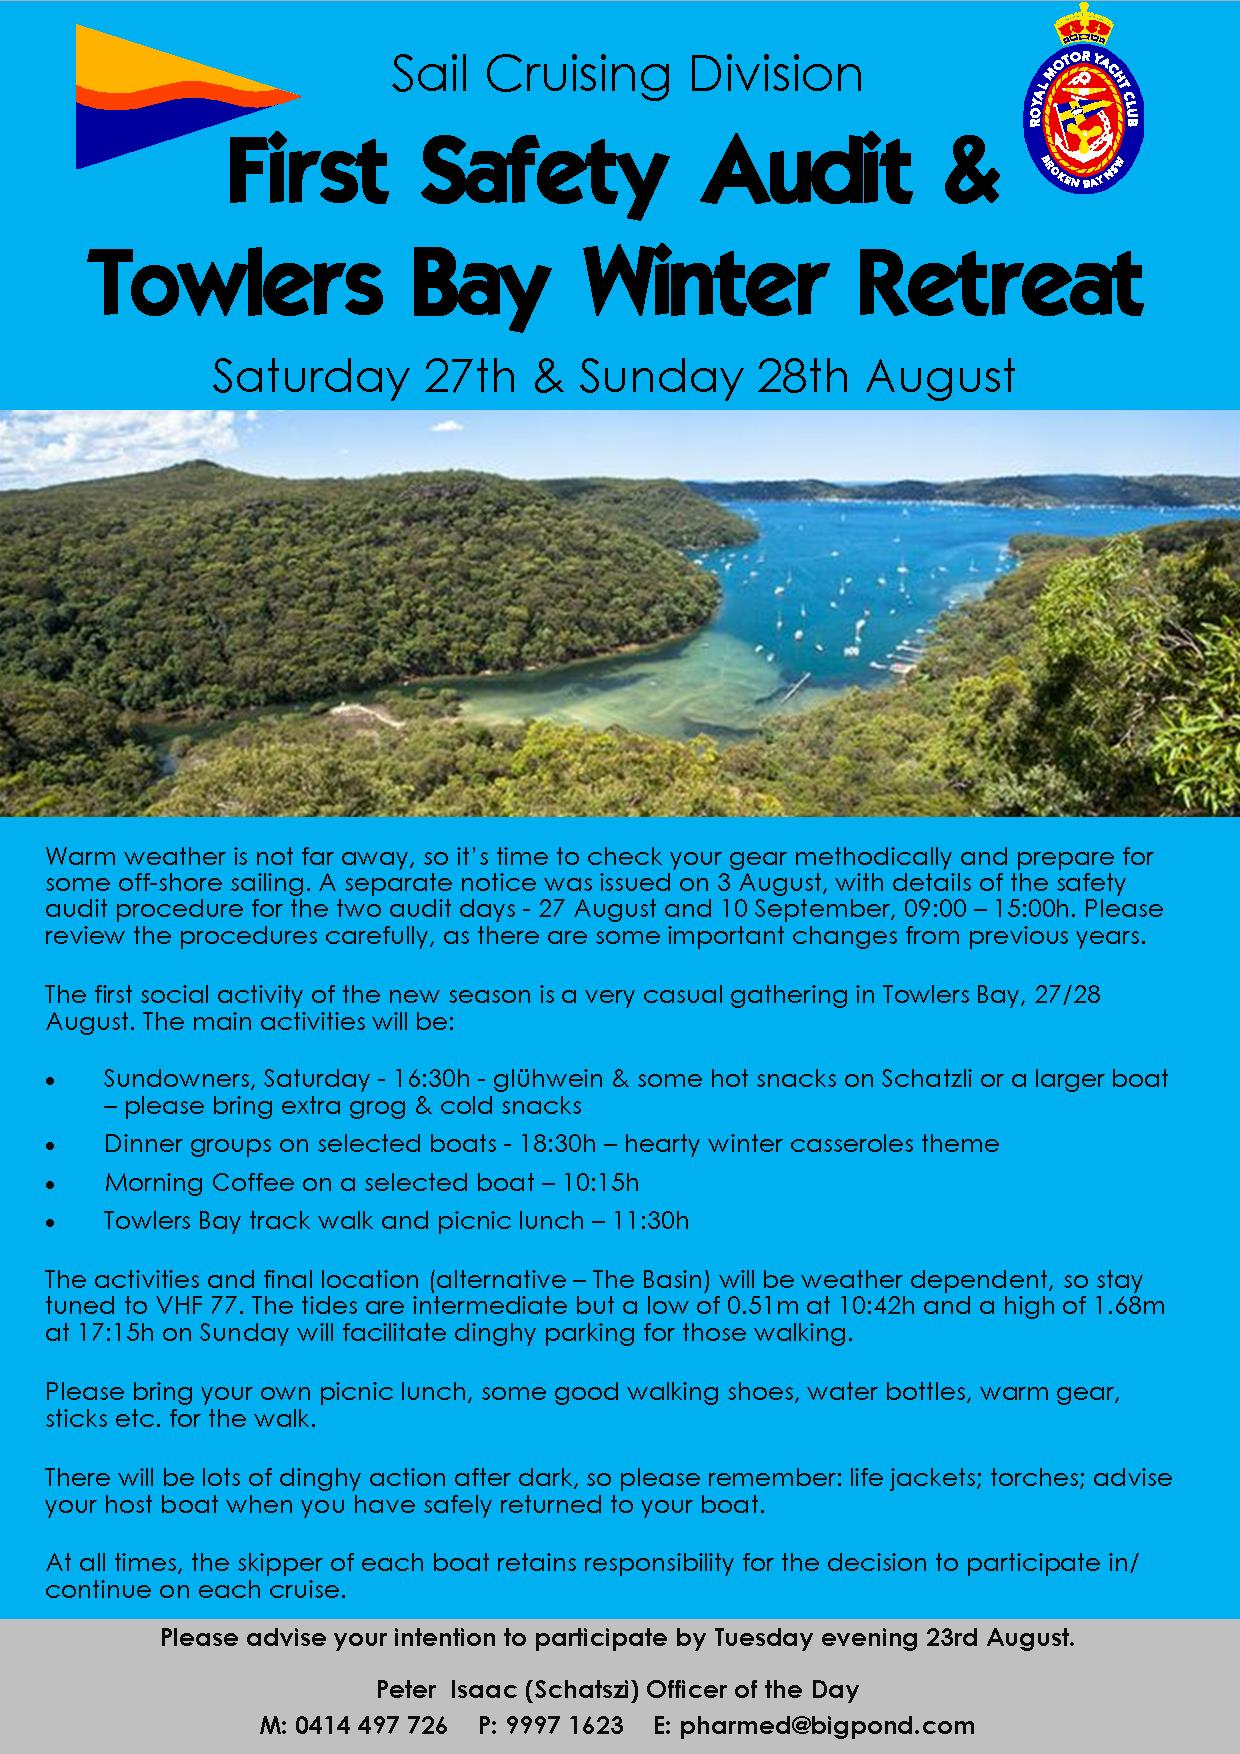 Safety audits Towlers Bay Winter Retreat 3